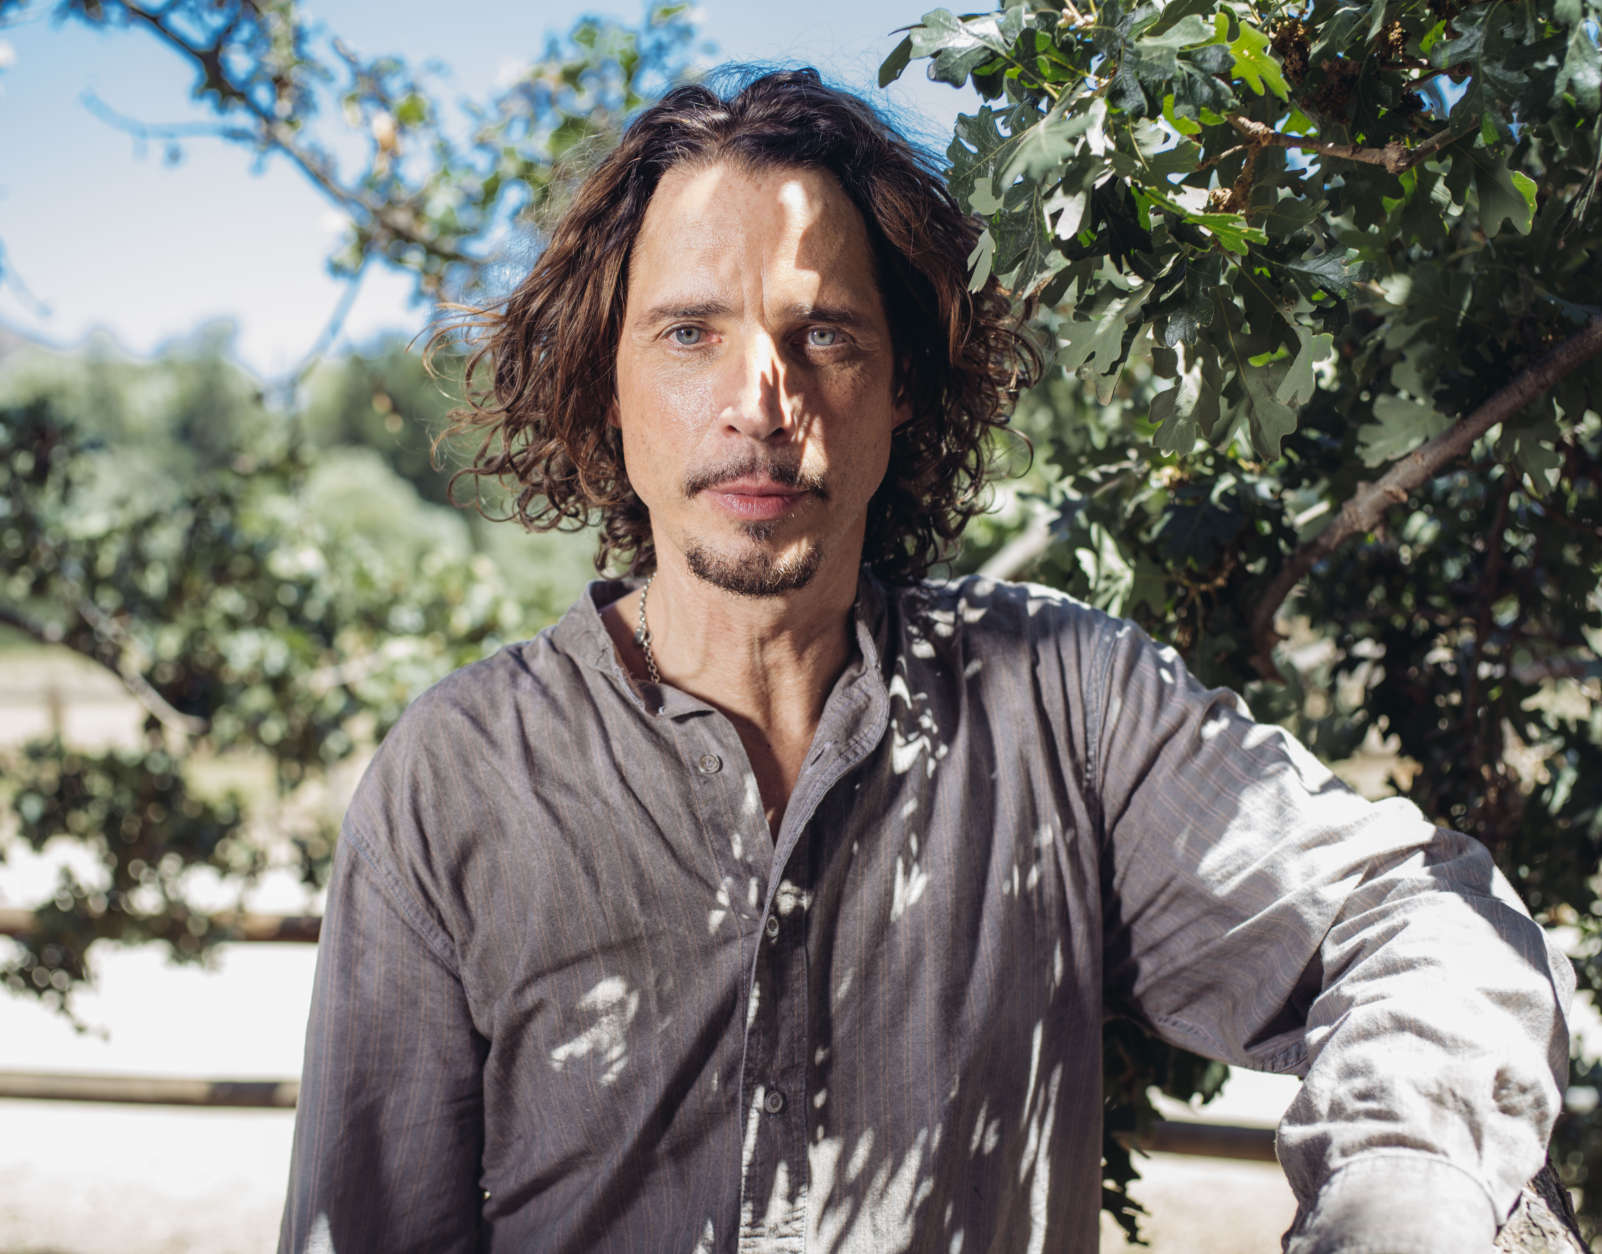 """In this July 29, 2015 photo, Chris Cornell poses for a portrait to promote his latest album, """"Higher Truth,"""" at The Paramount Ranch in Agoura Hills, Calif. (Photo by Casey Curry/Invision/AP)"""